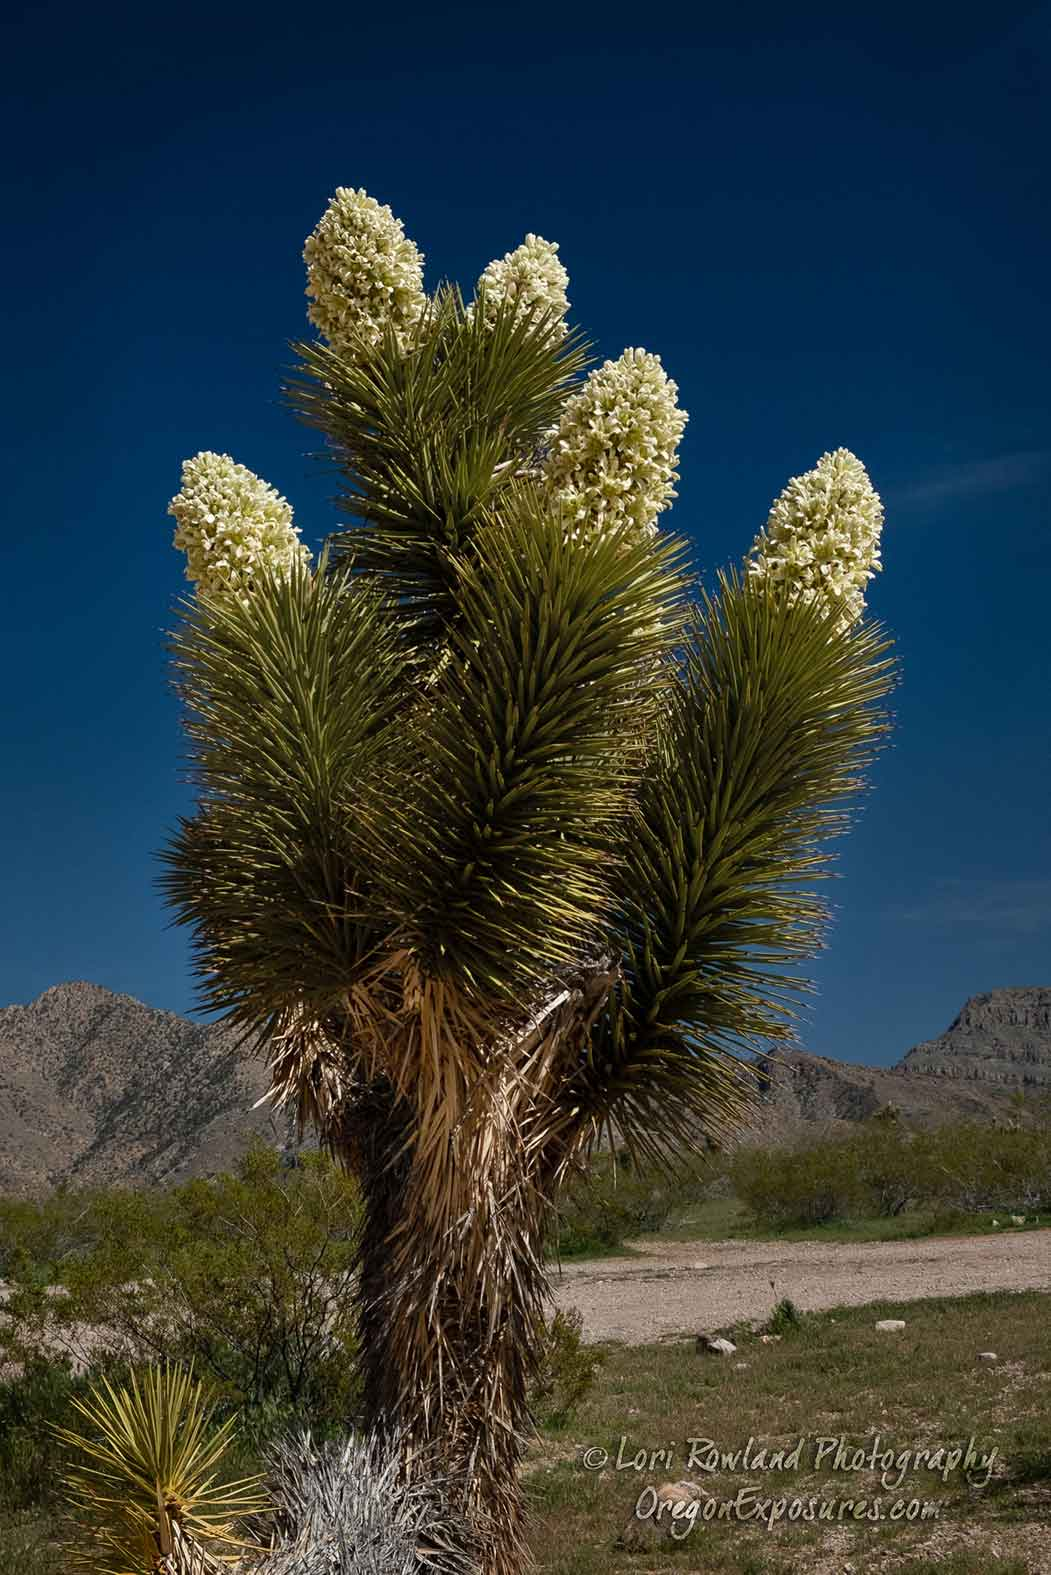 A Joshua Tree in full bloom at Gold Butte National Monument in Nevada.